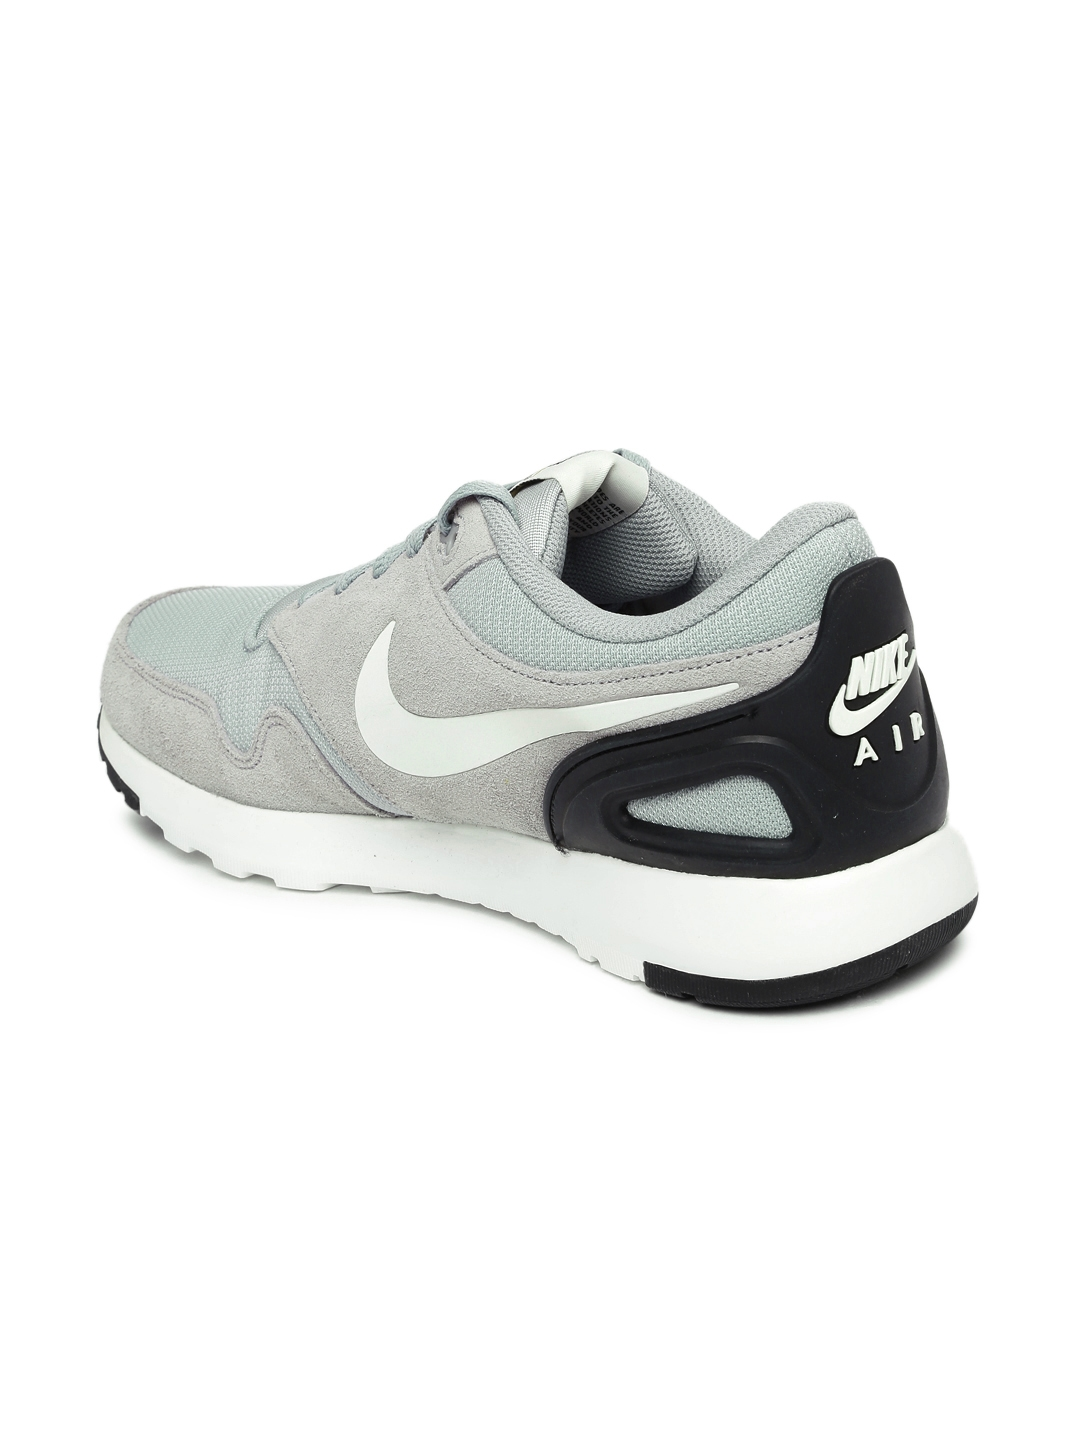 free shipping d65d1 018a1 image. MORE COLOURS. Nike